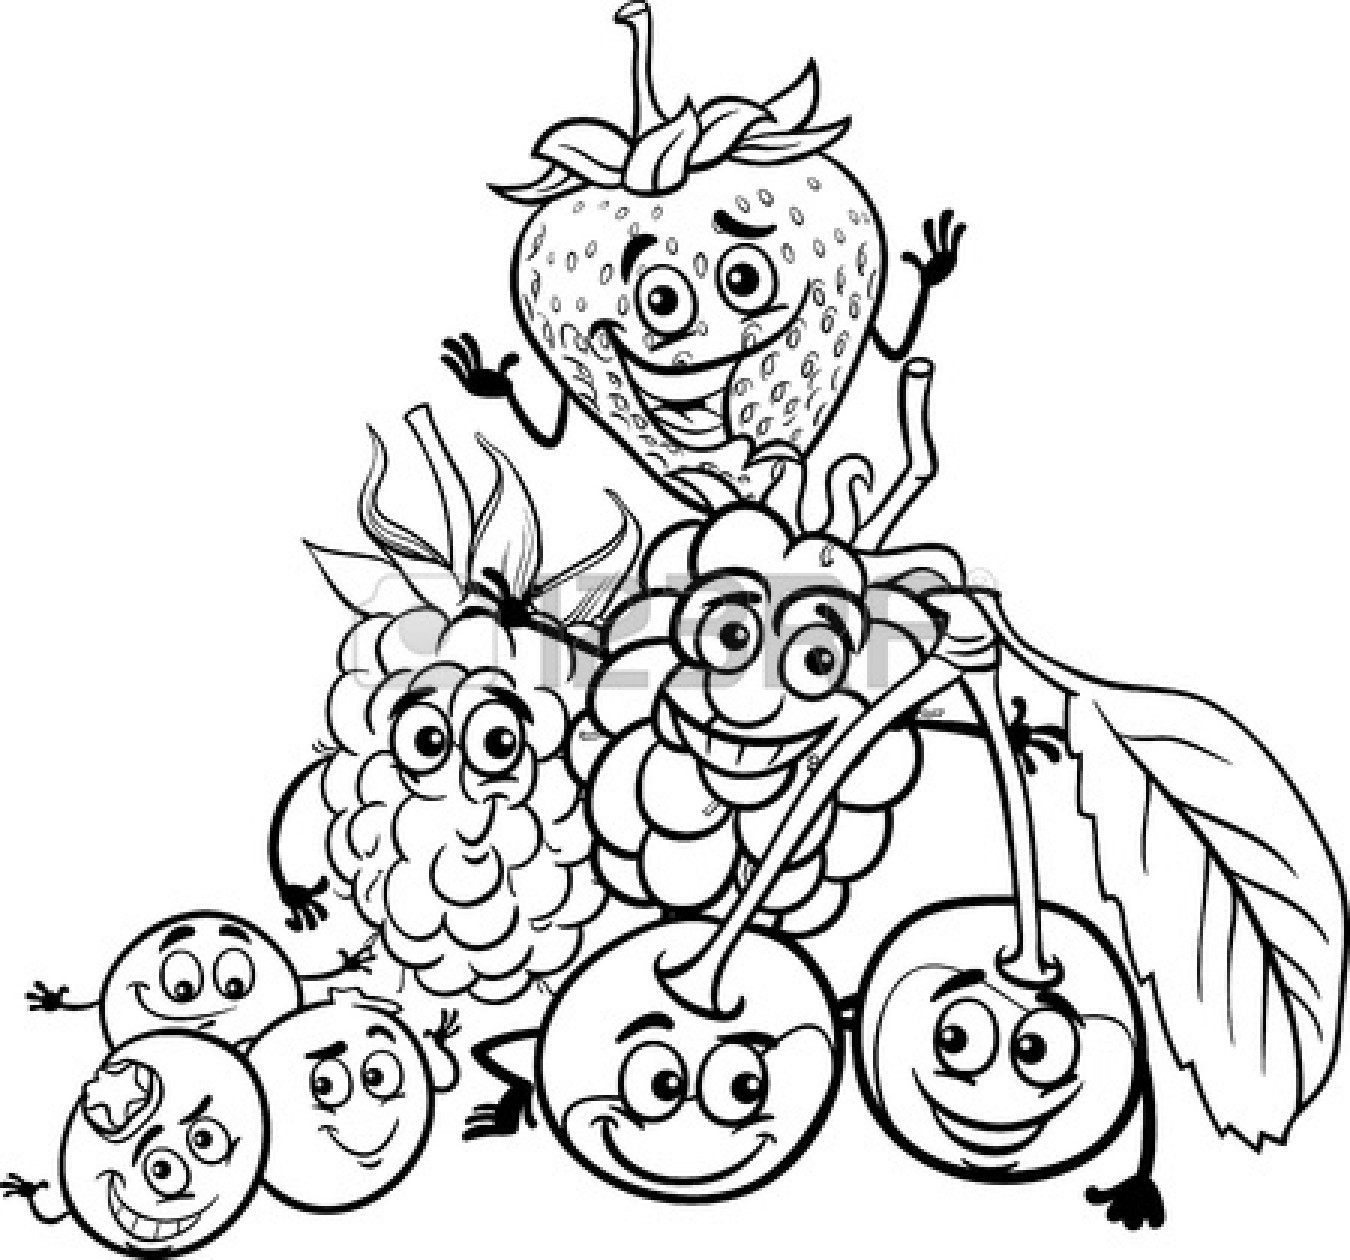 544 Food Clipart Black And White Food Clipart Black And White.